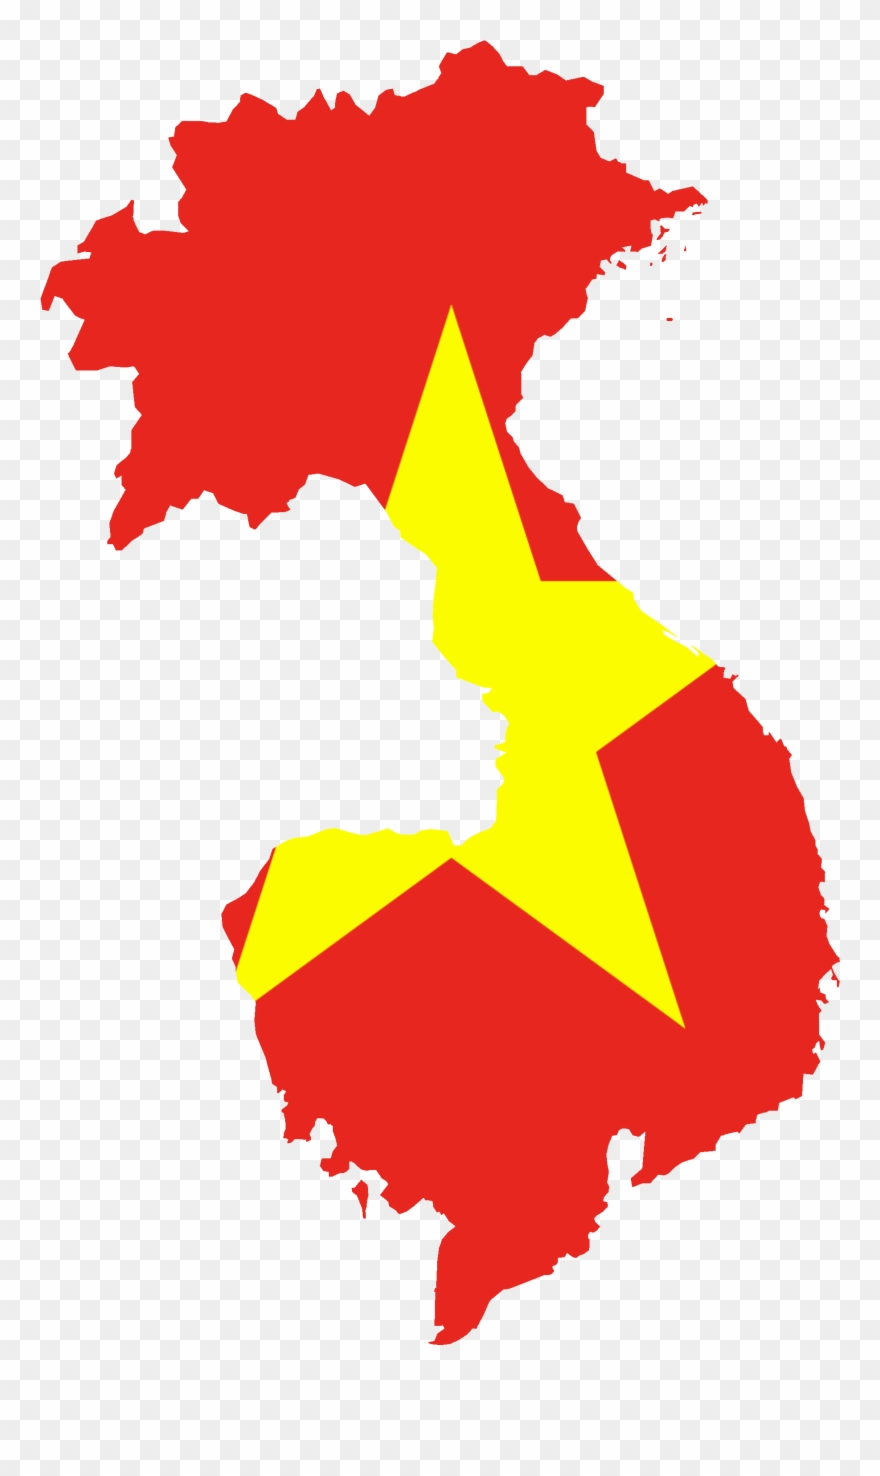 Vietnam map clipart clip black and white stock Vietnam Flag Cliparts - Vietnam War: The Vietnam War In 50 ... clip black and white stock